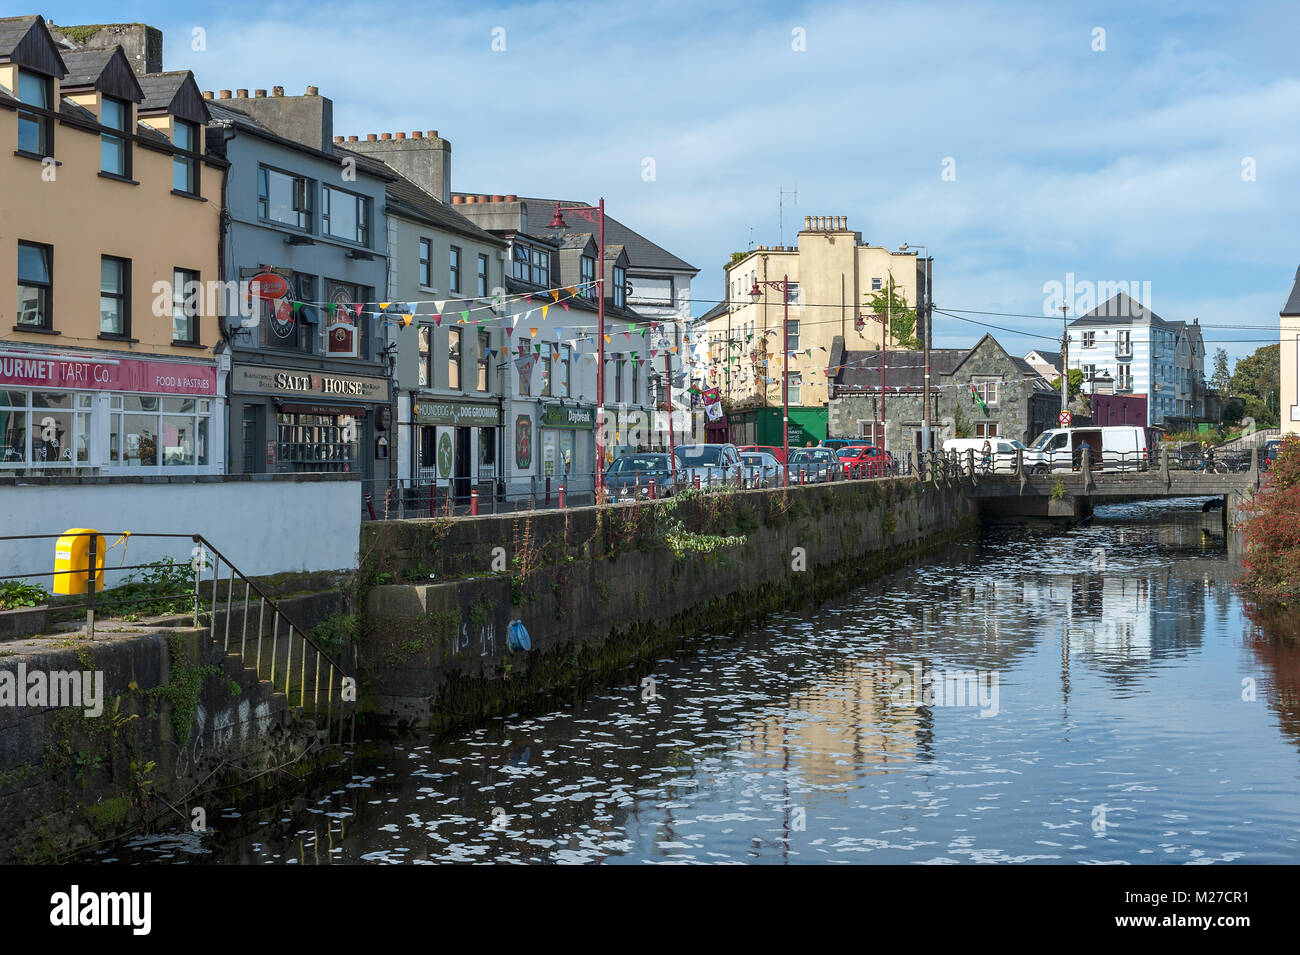 Canal view, Galway, Ireland - Stock Image